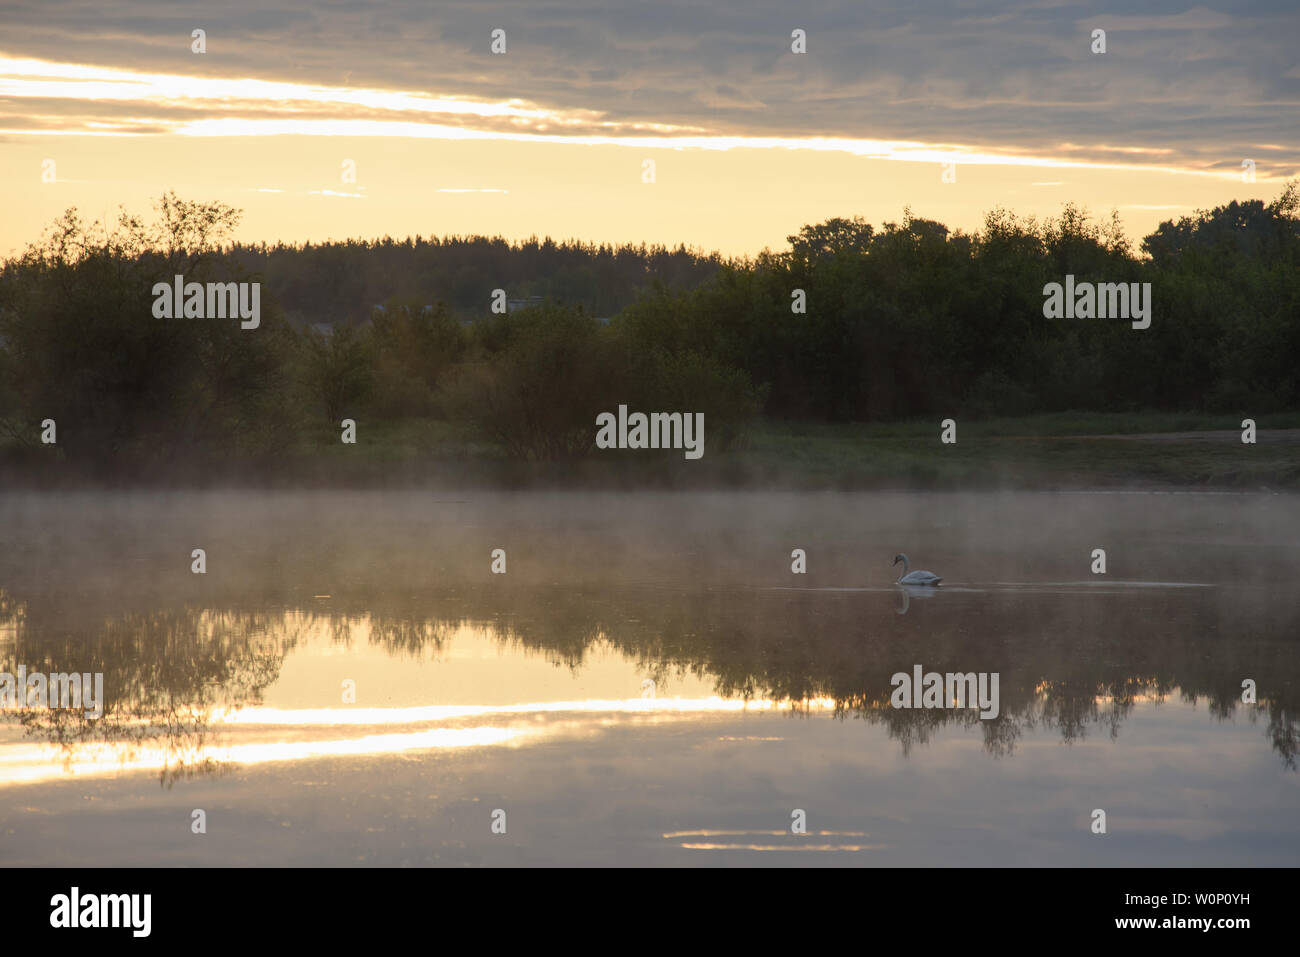 A white swan on a secluded lake in the rays of the rising sun and a haze of fog. - Stock Image